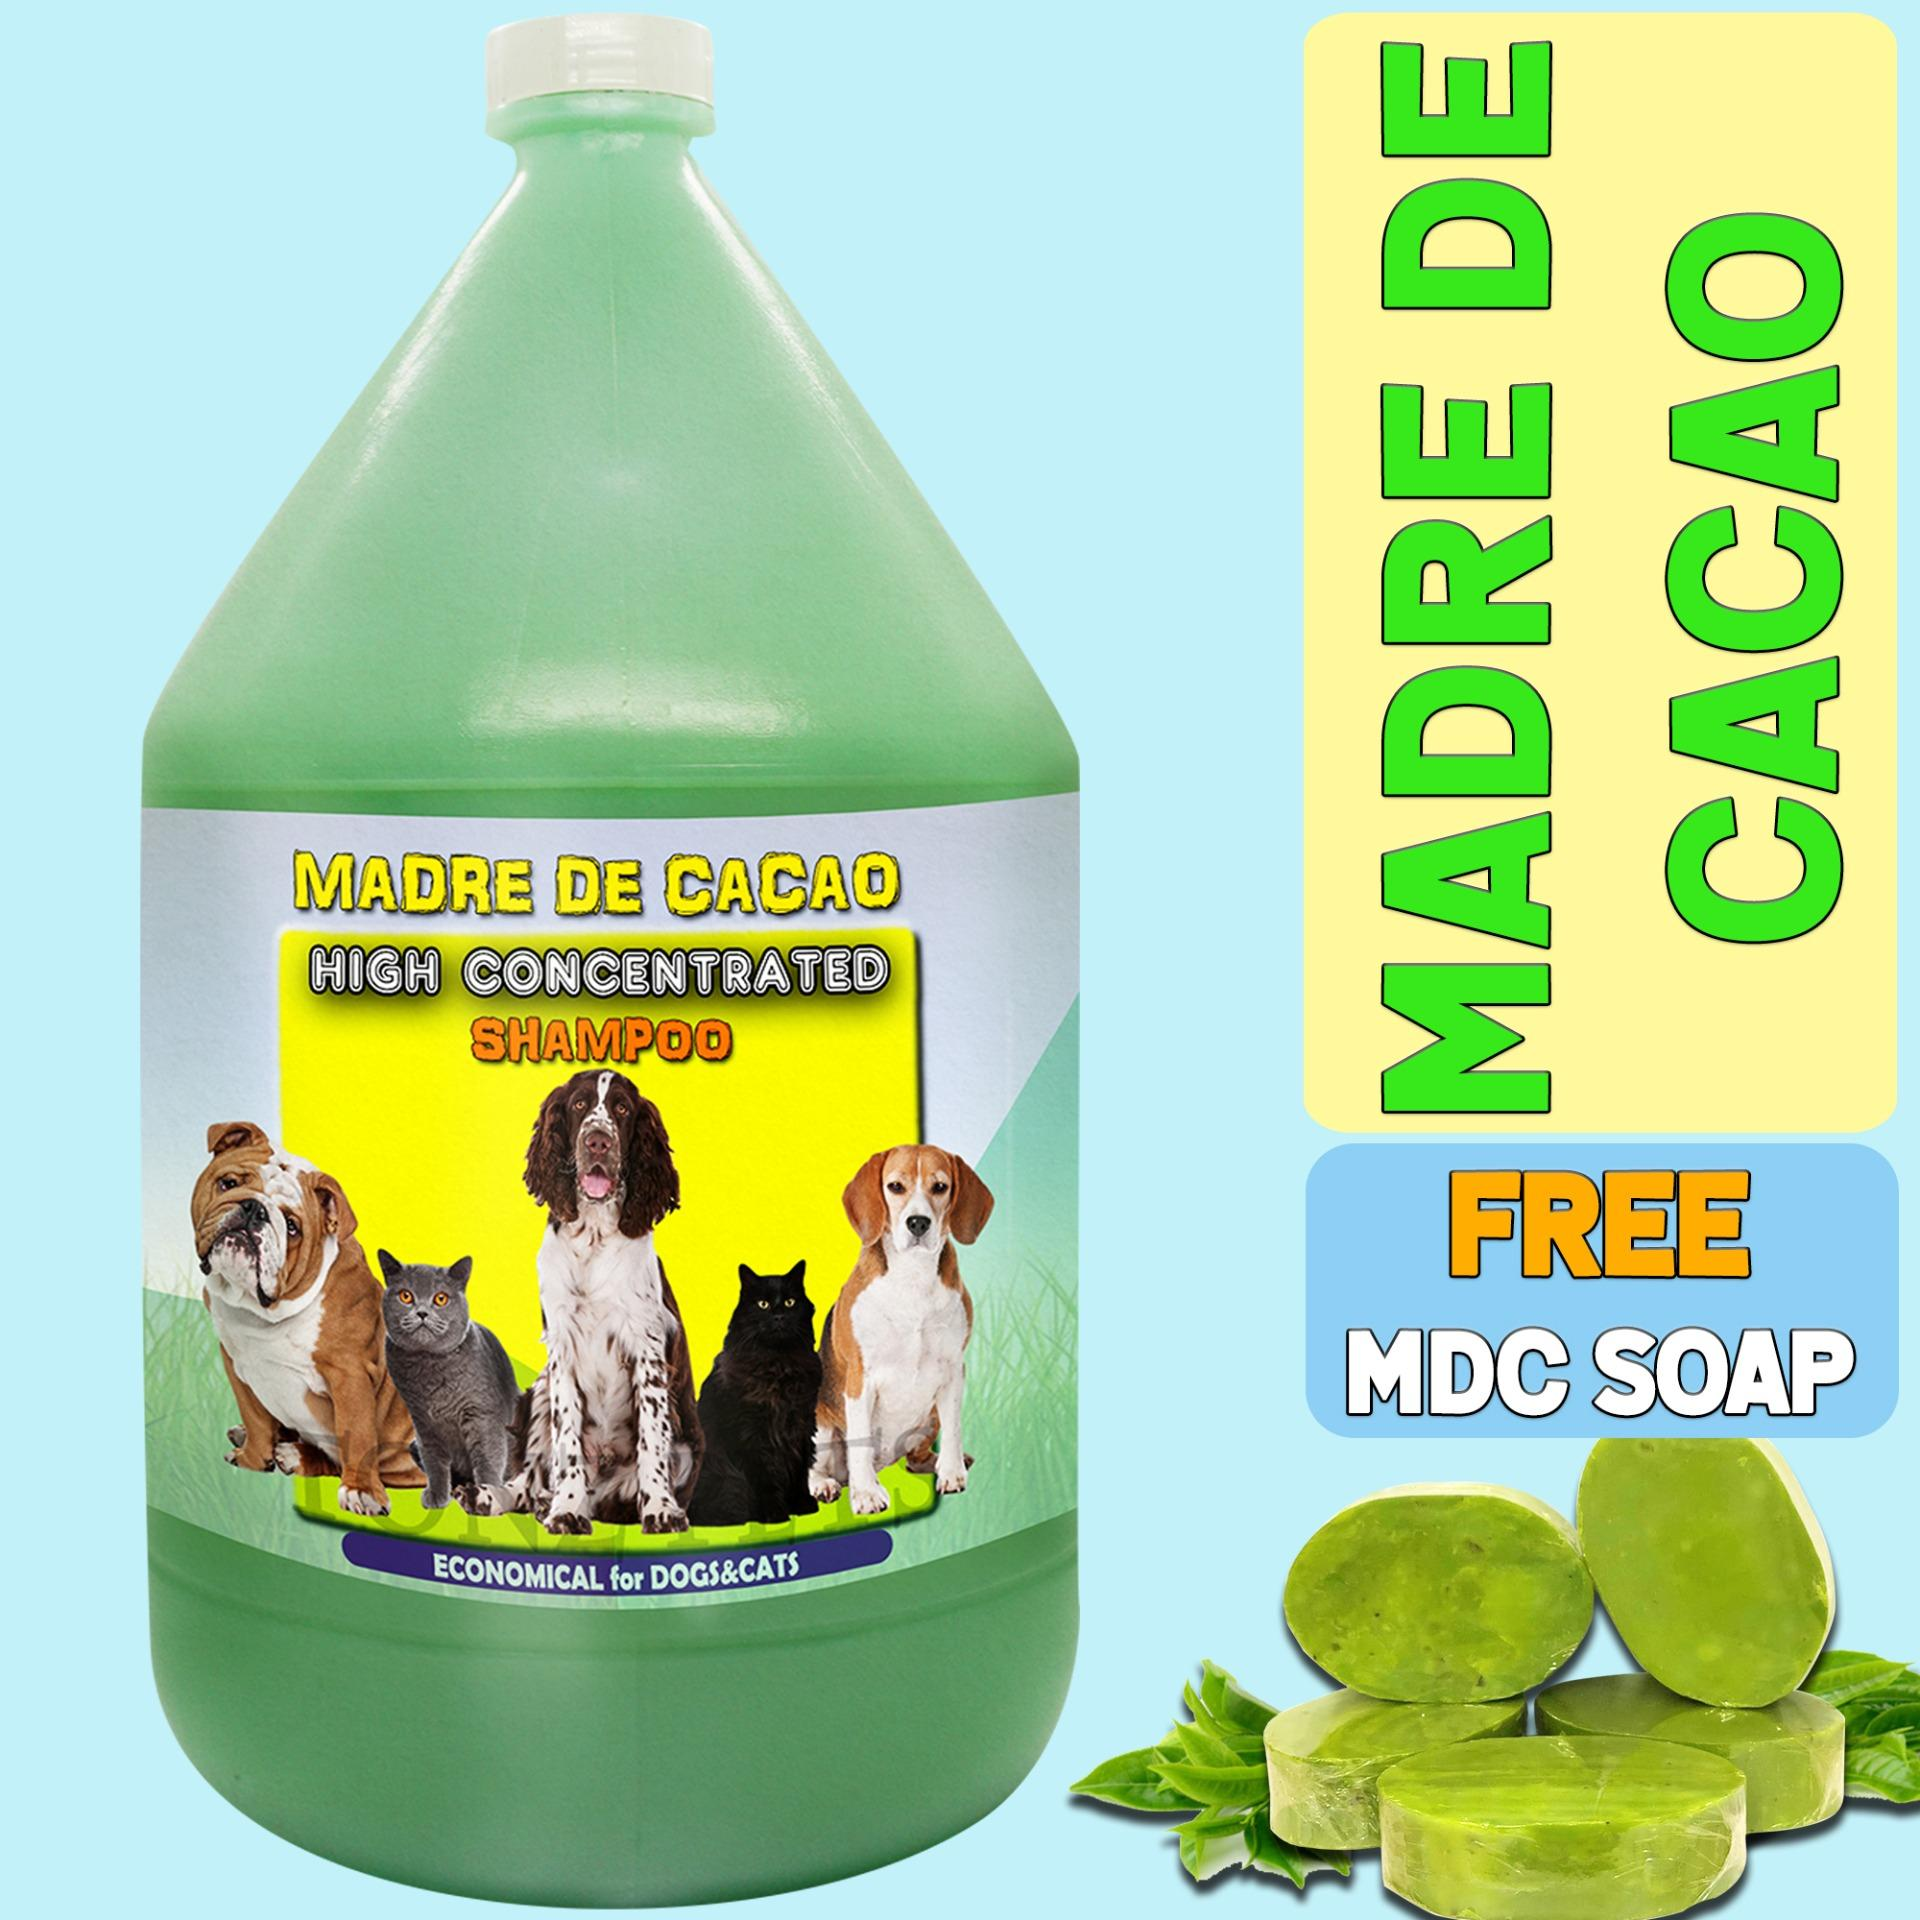 1 Gallon Madre De Cacao Shampoo With Guava Extract Supplier With Mdc Soap For Dogs And Cats, Anti-Mange, Anti-Ticks, Anti-Bacterial By Madre De Cacao Products.